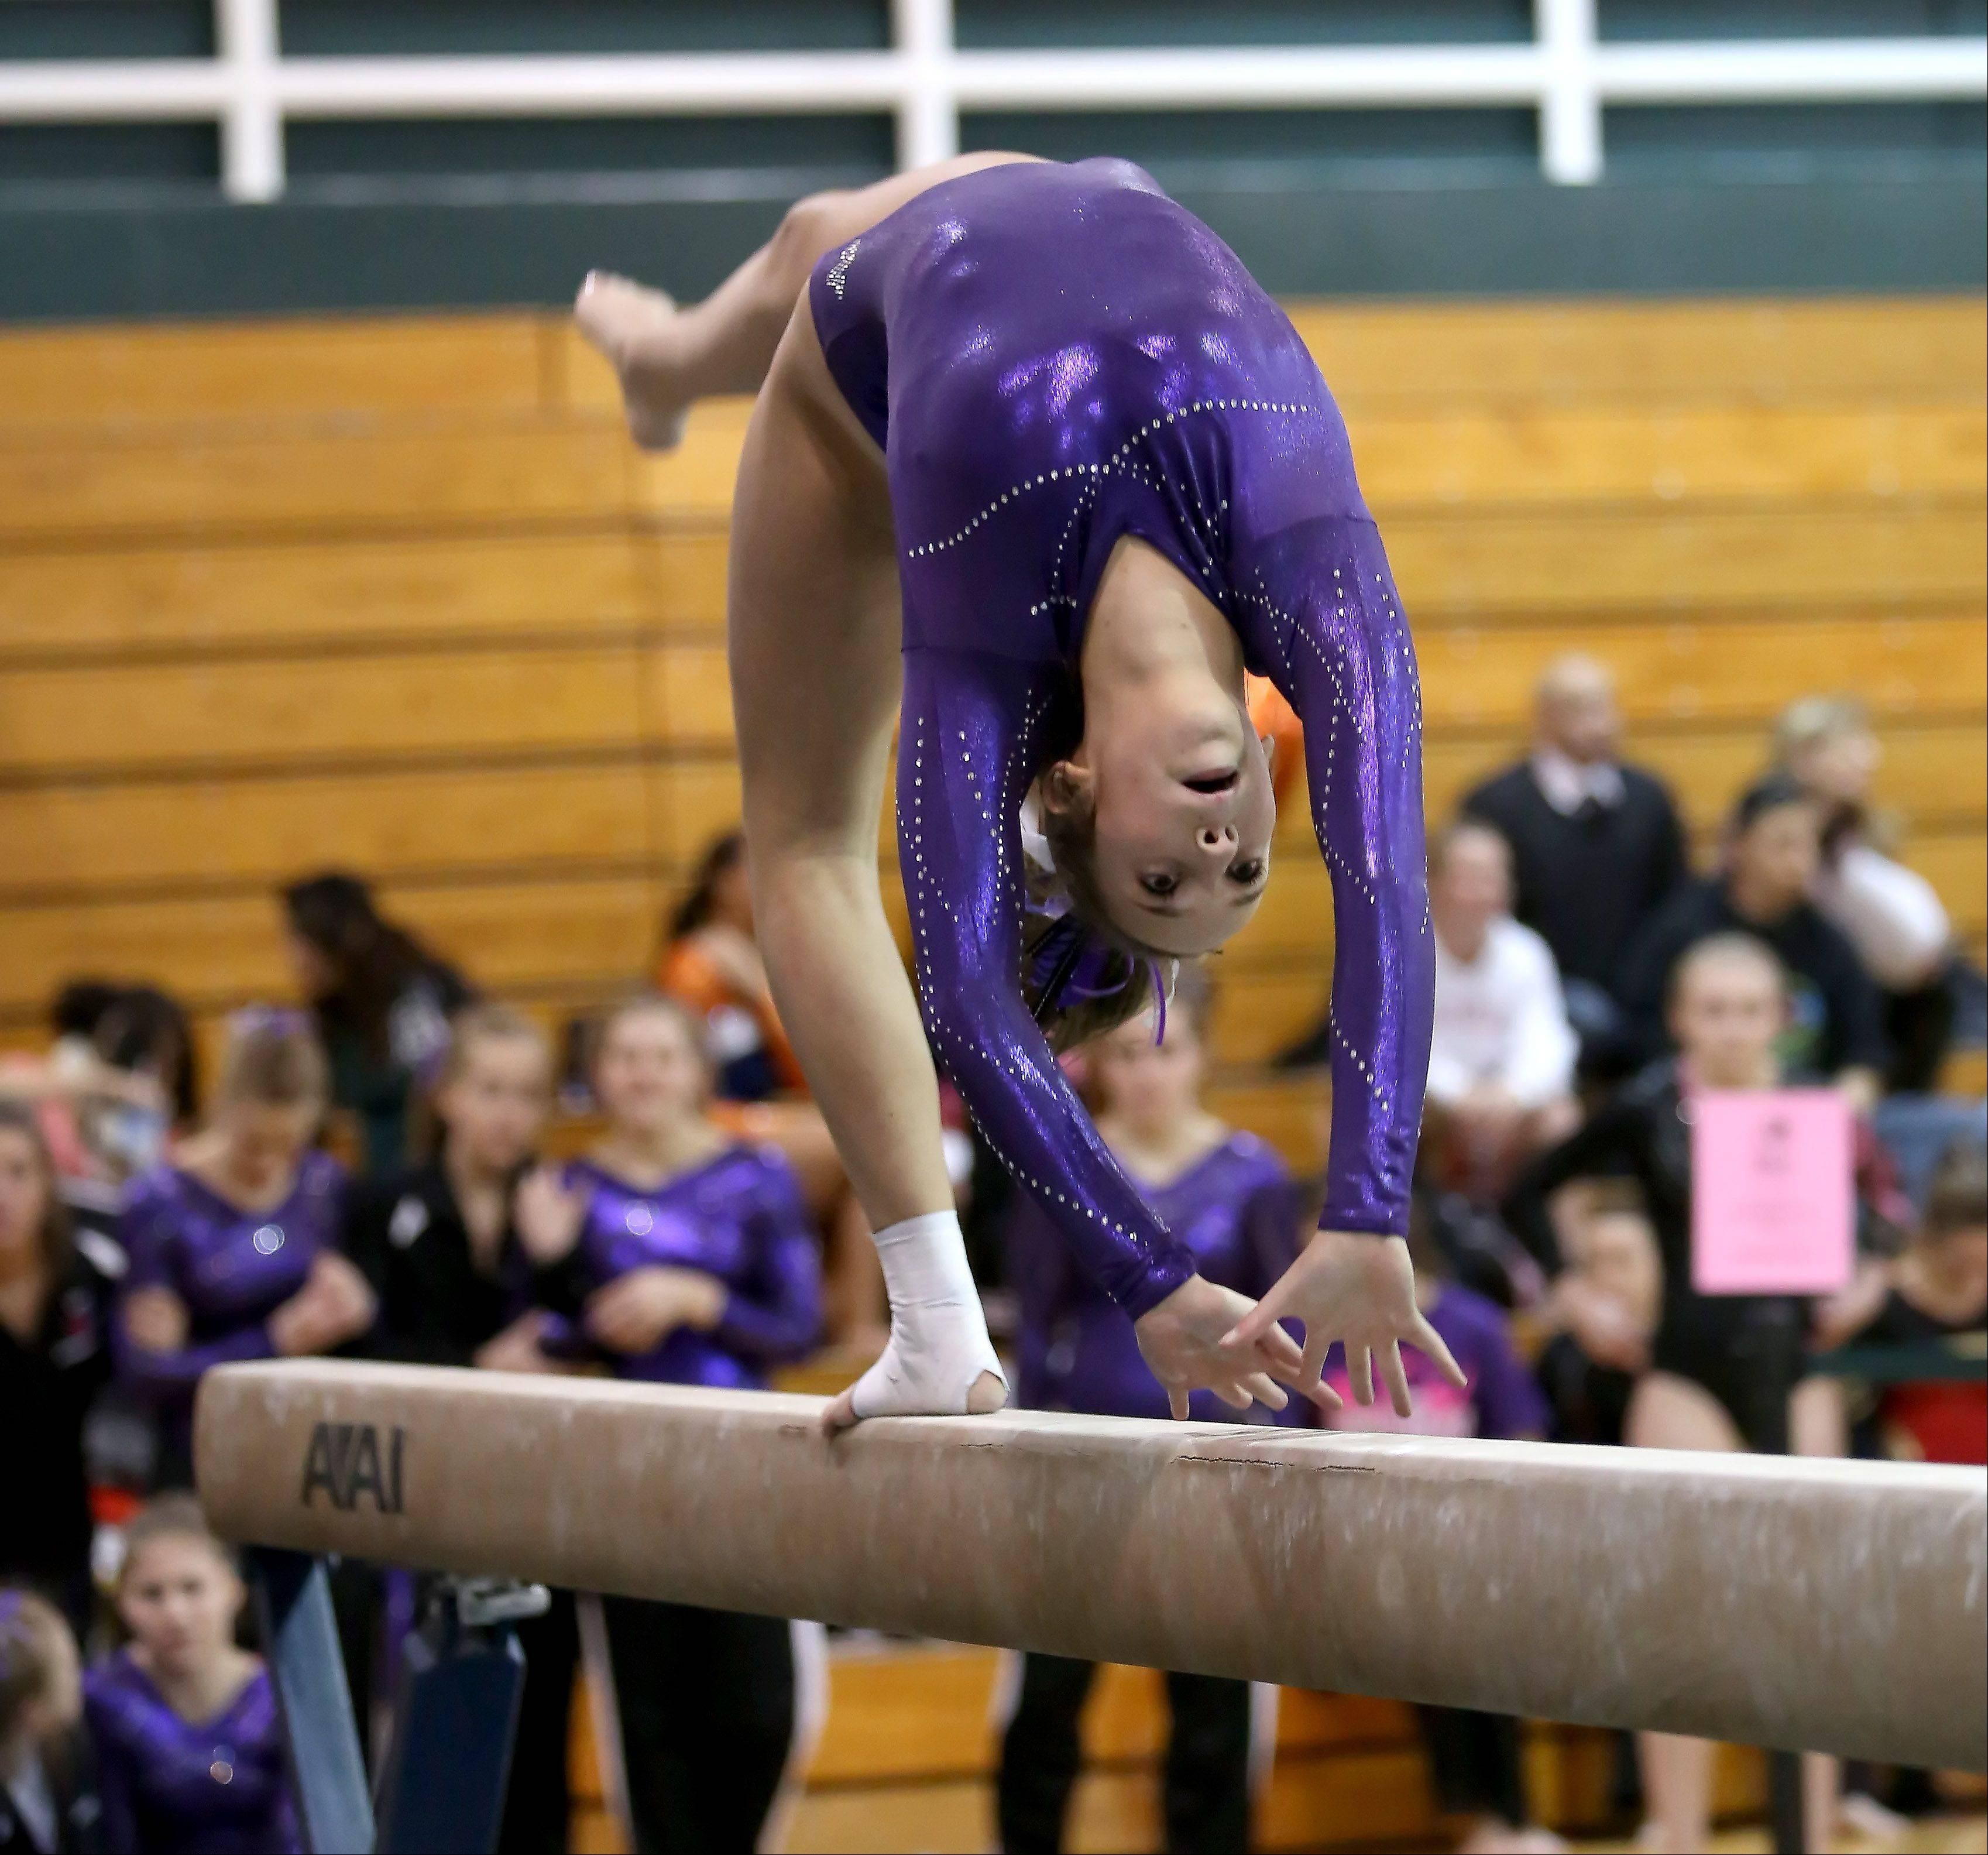 Sam Upshaw of St. Charles co-op, performs her beam routine at the sectional gymnastics championship at Glenbard West on Tuesday in Glen Ellyn.